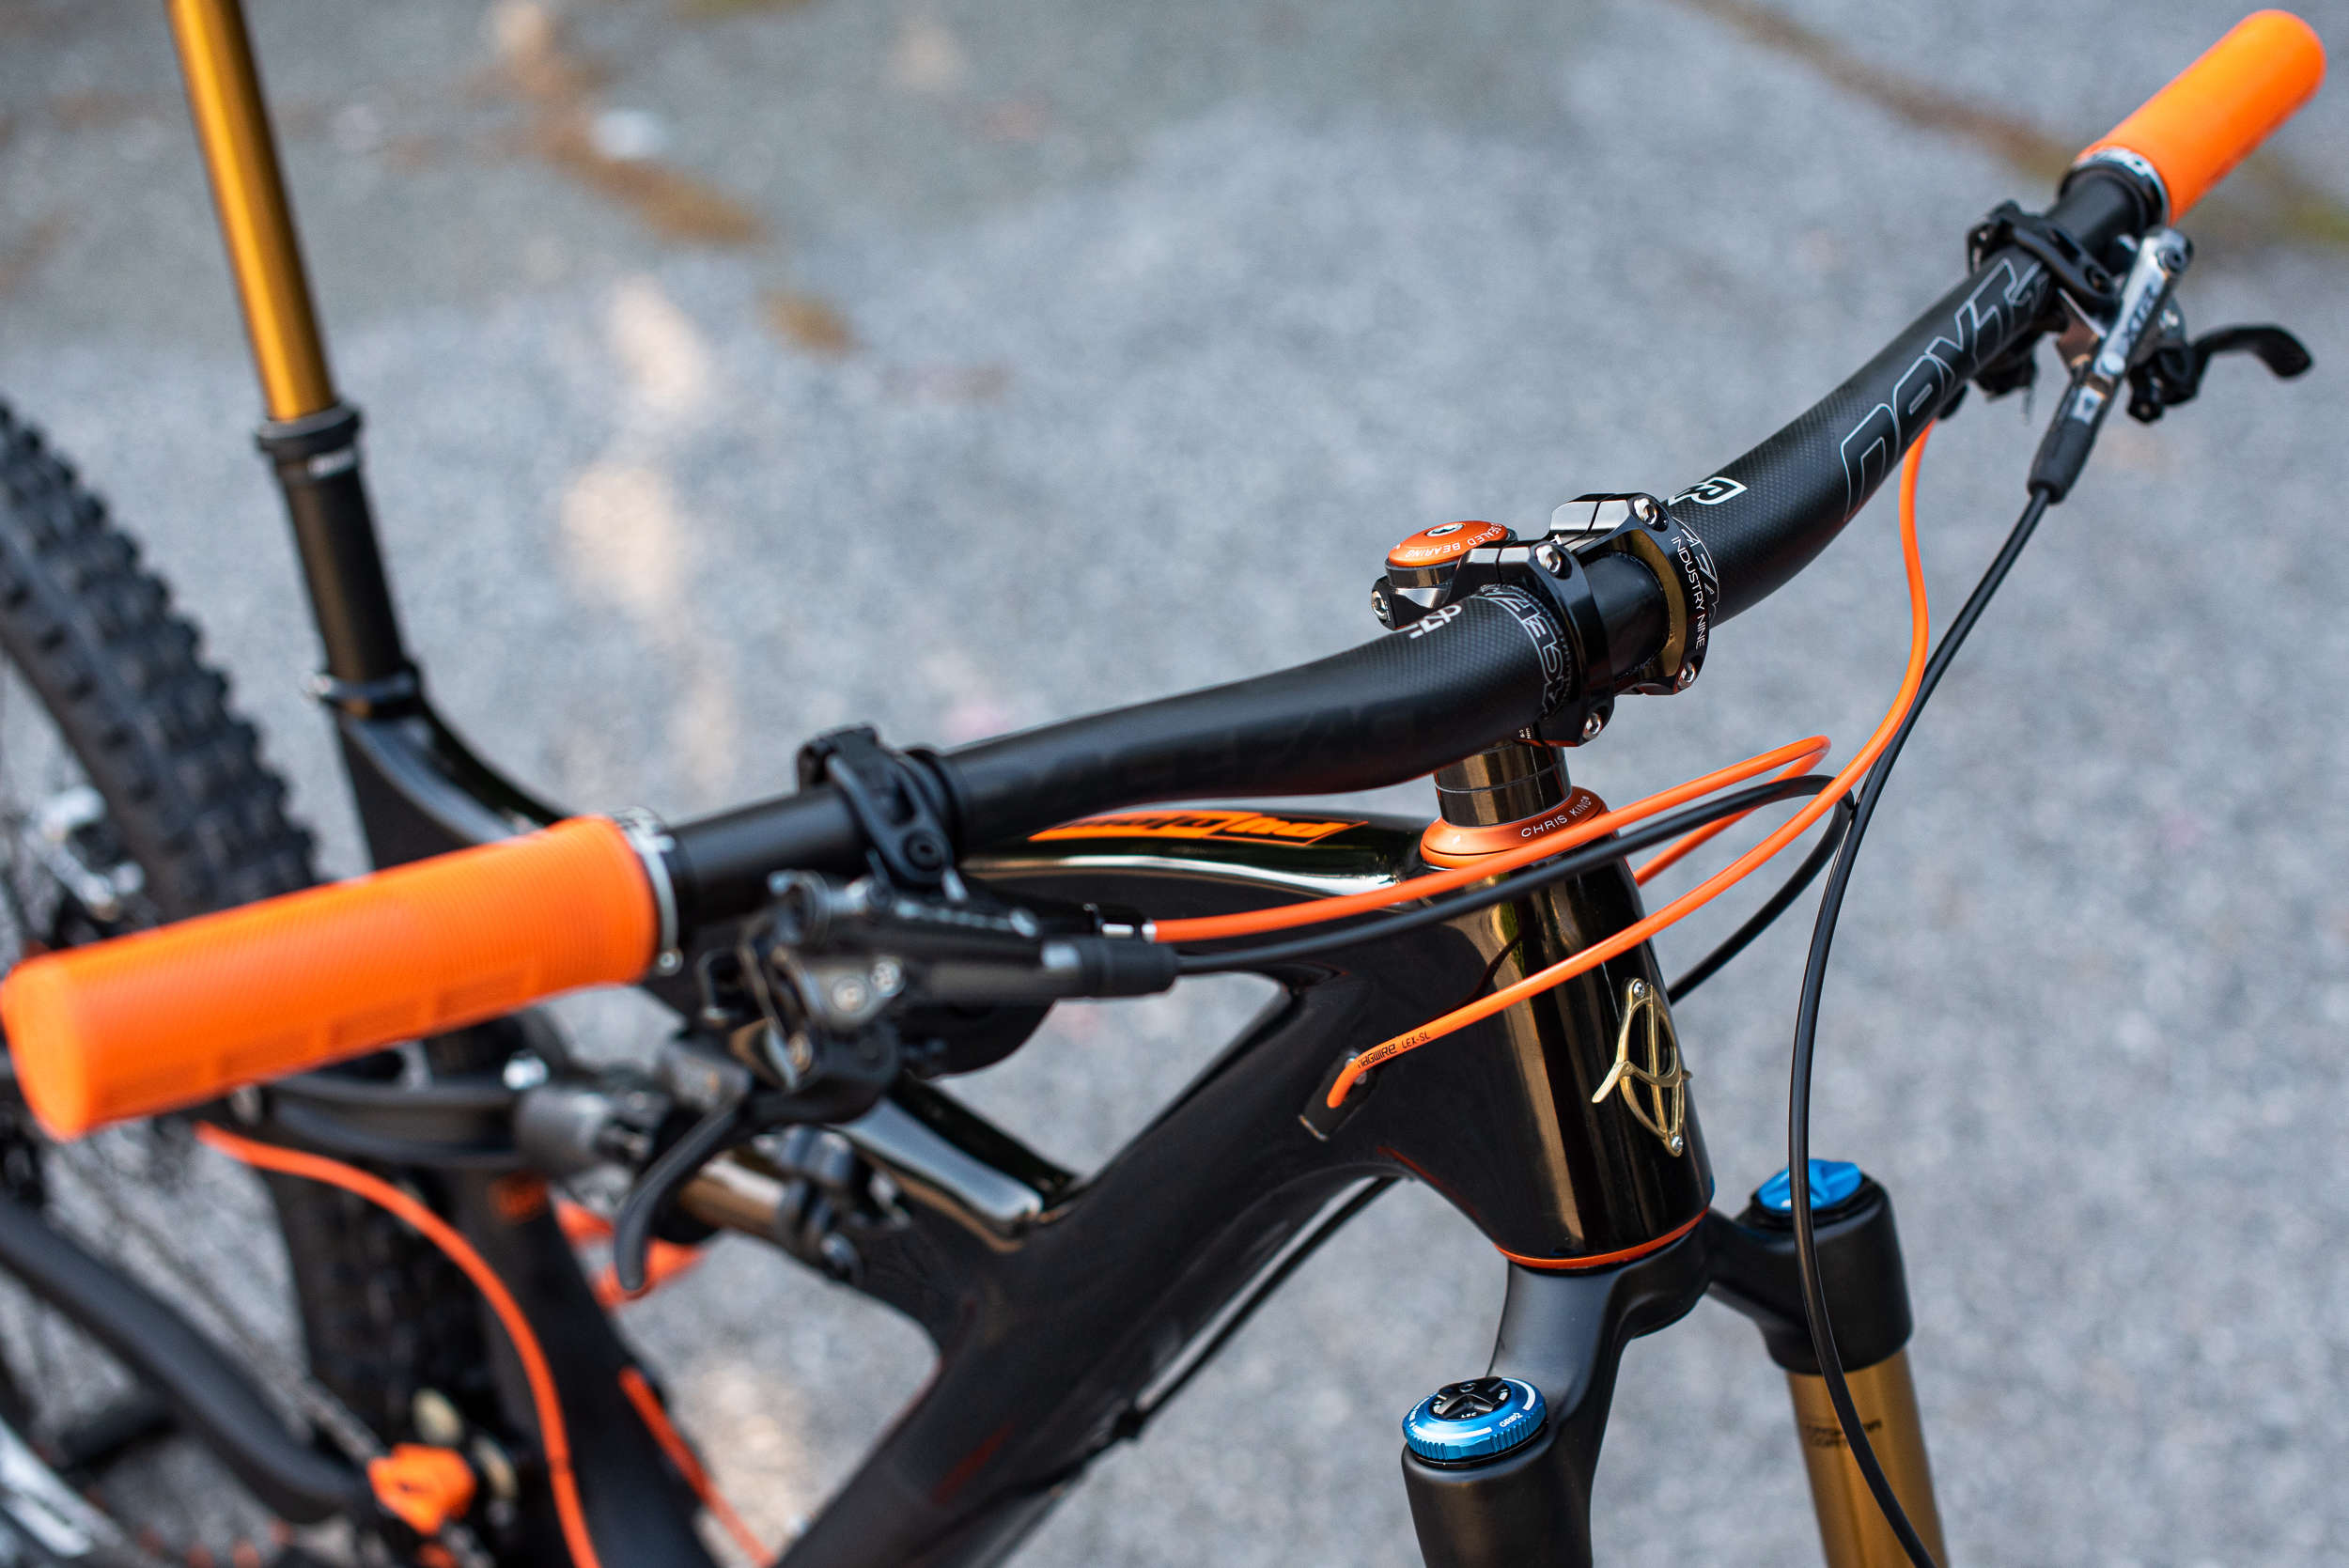 Ibis bike showing handlebars and components